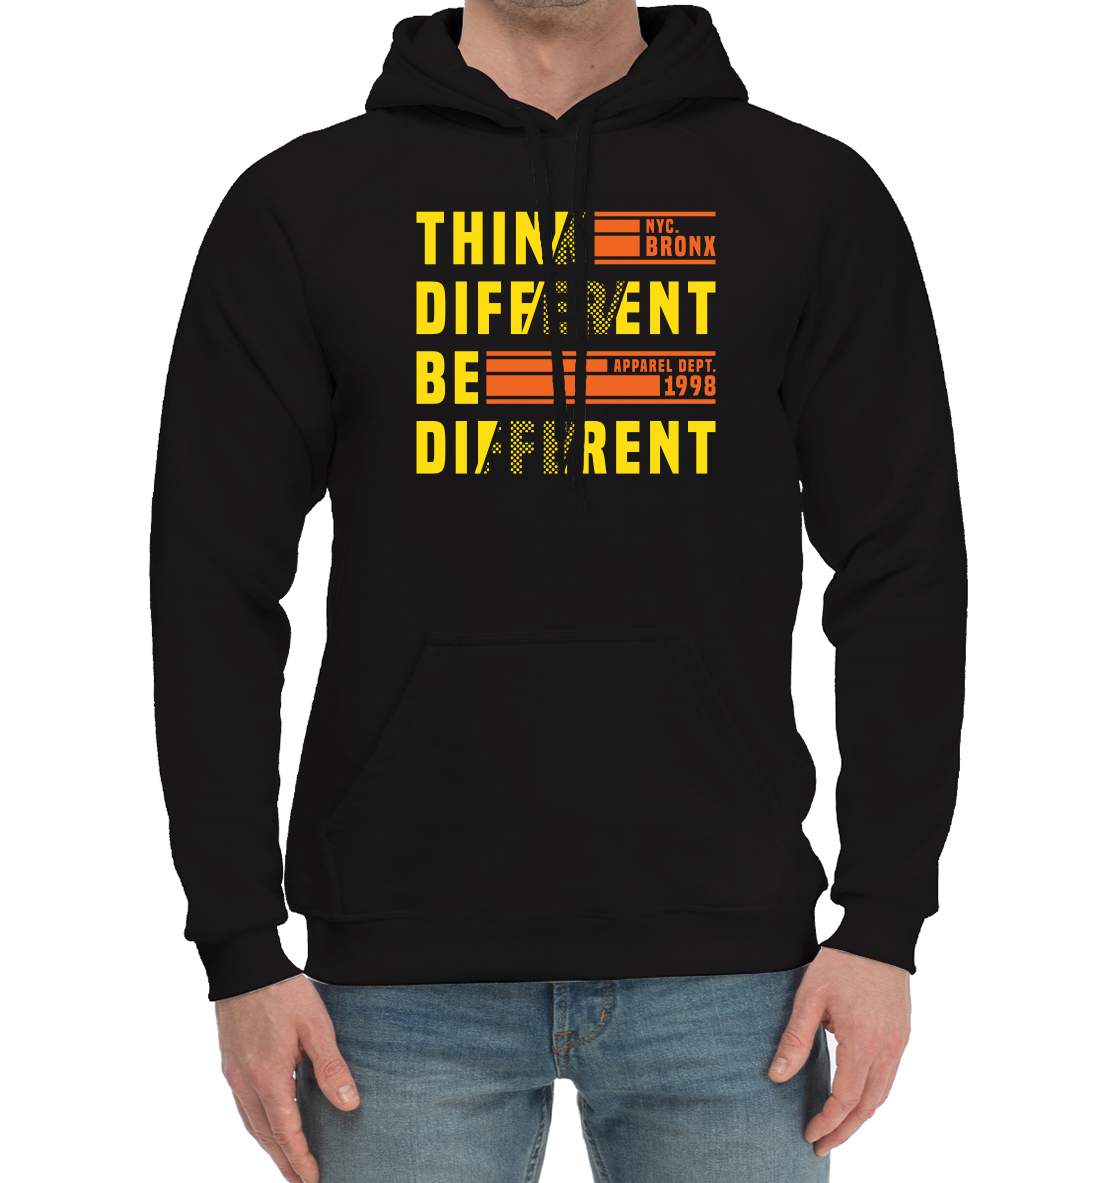 Think different be different